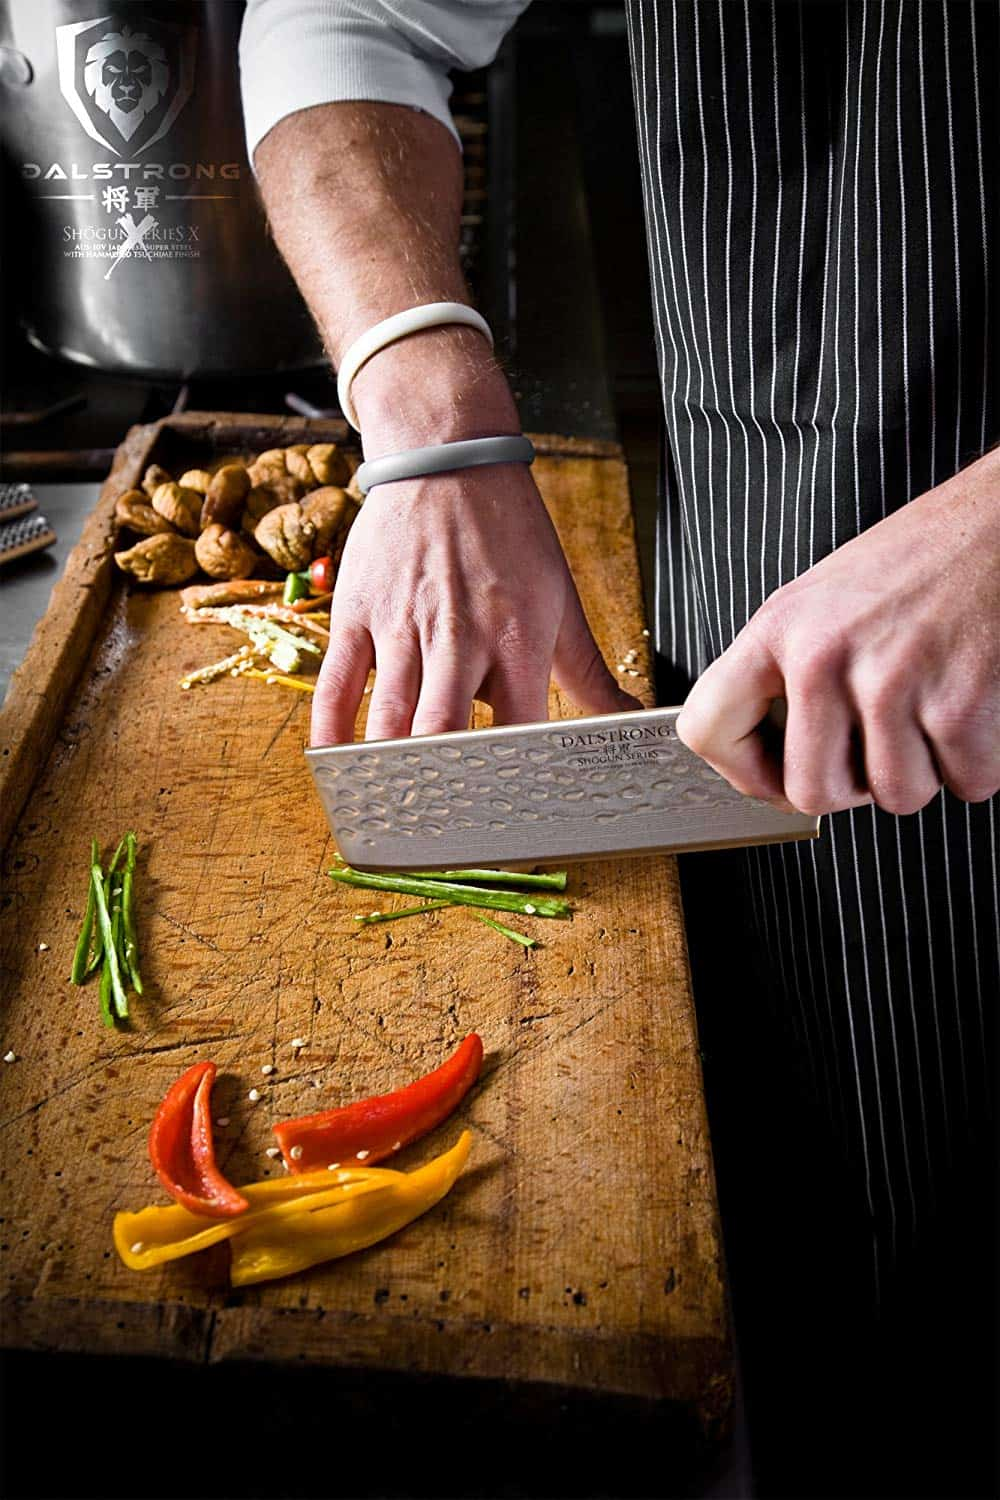 Hammered hibachi vegetable knife